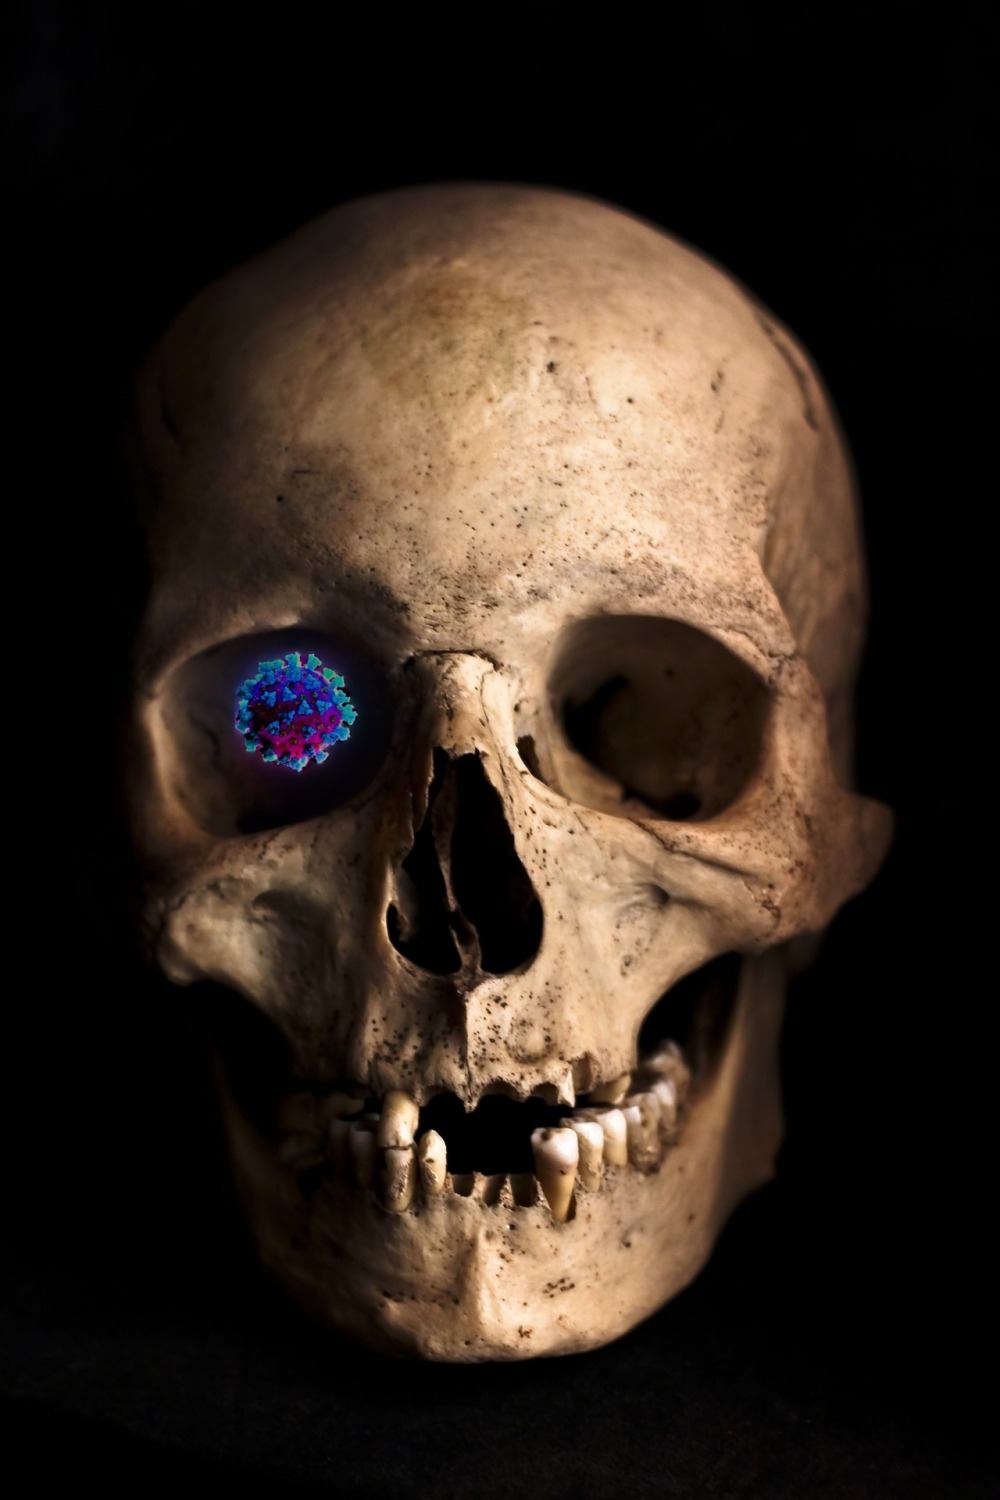 virus in skull eye